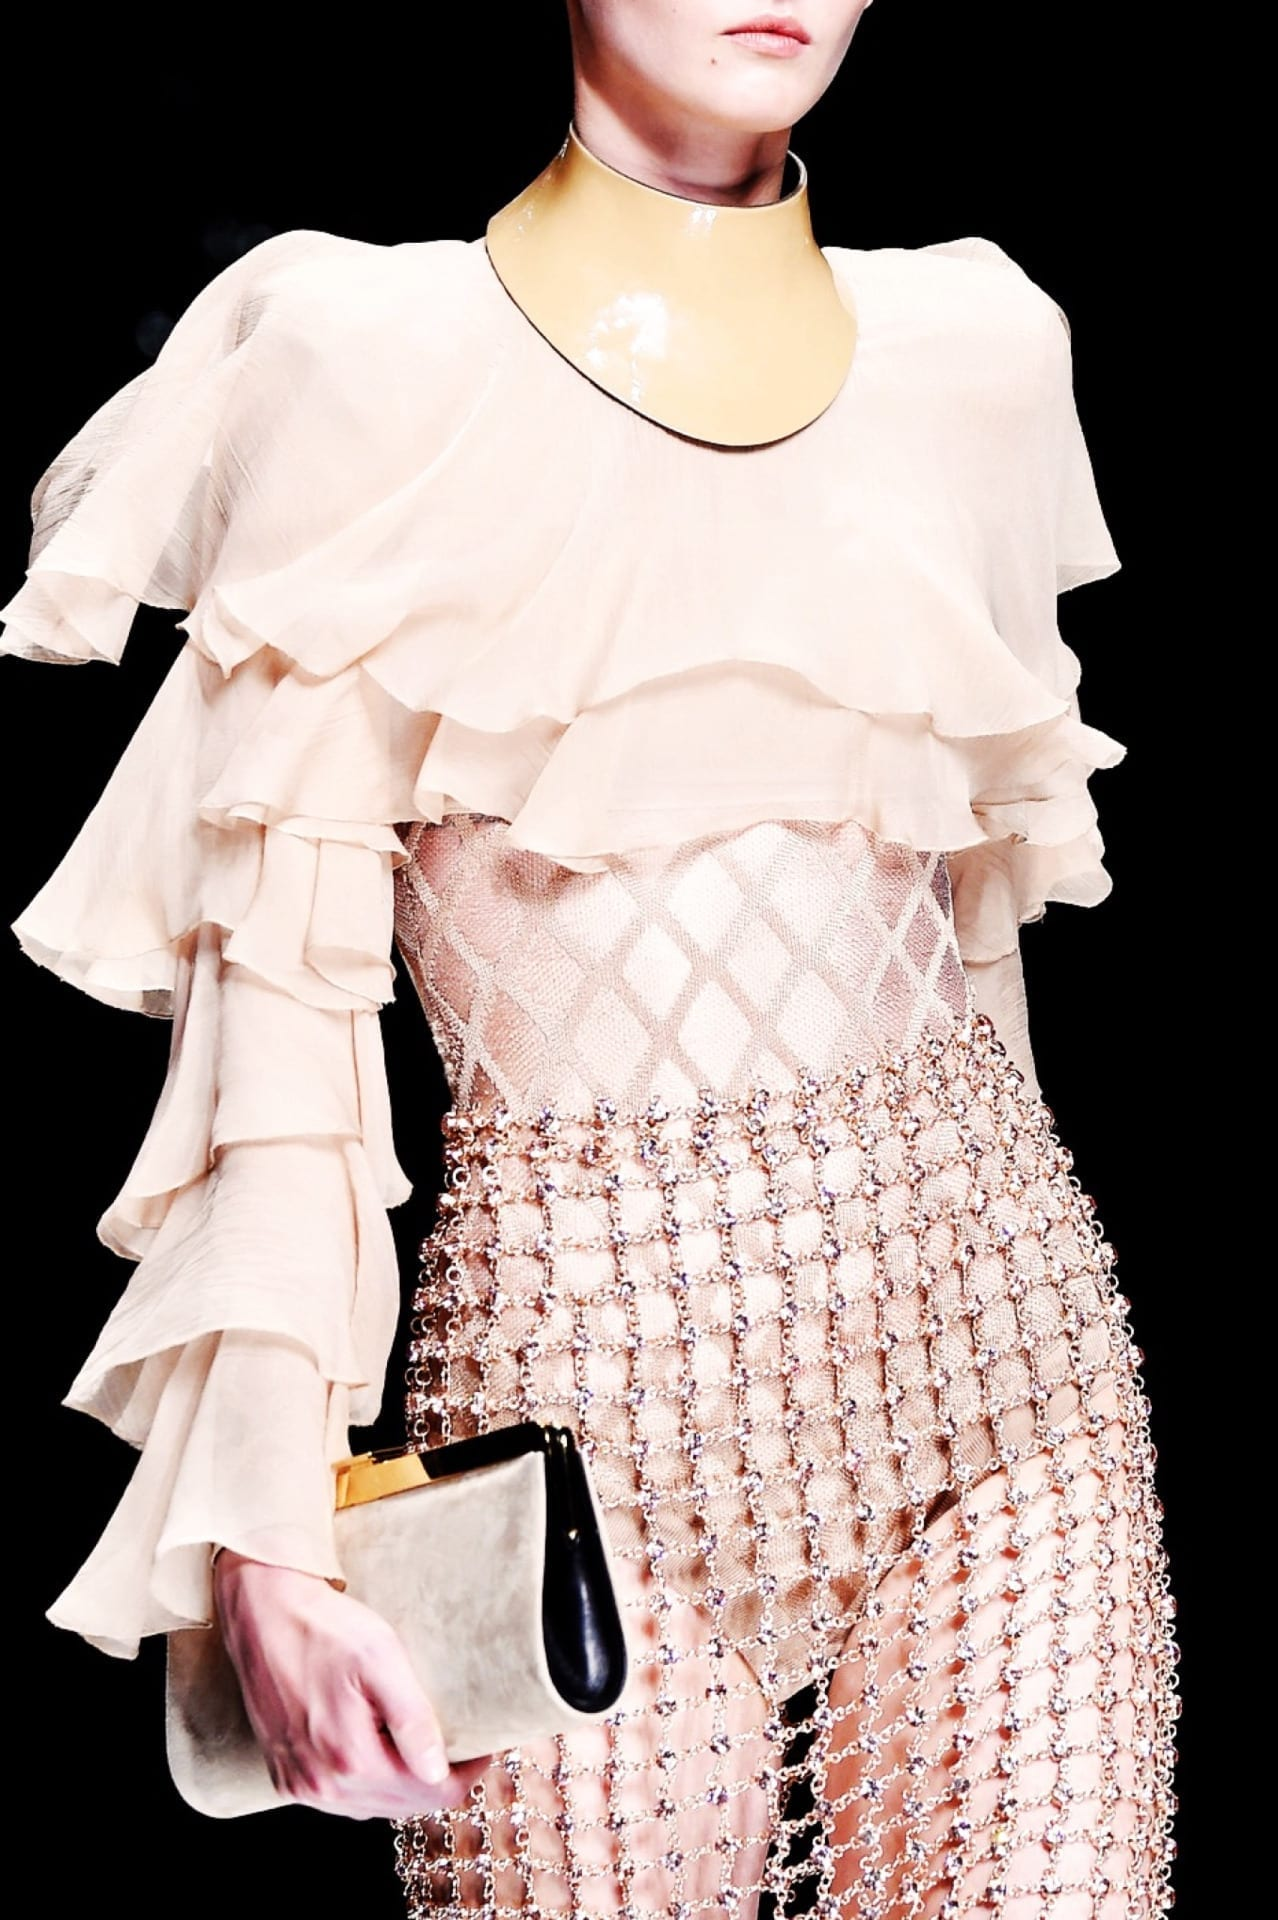 cosa andrà di moda estate 2016, balmain ss 2016 rtw, theladycracy.it